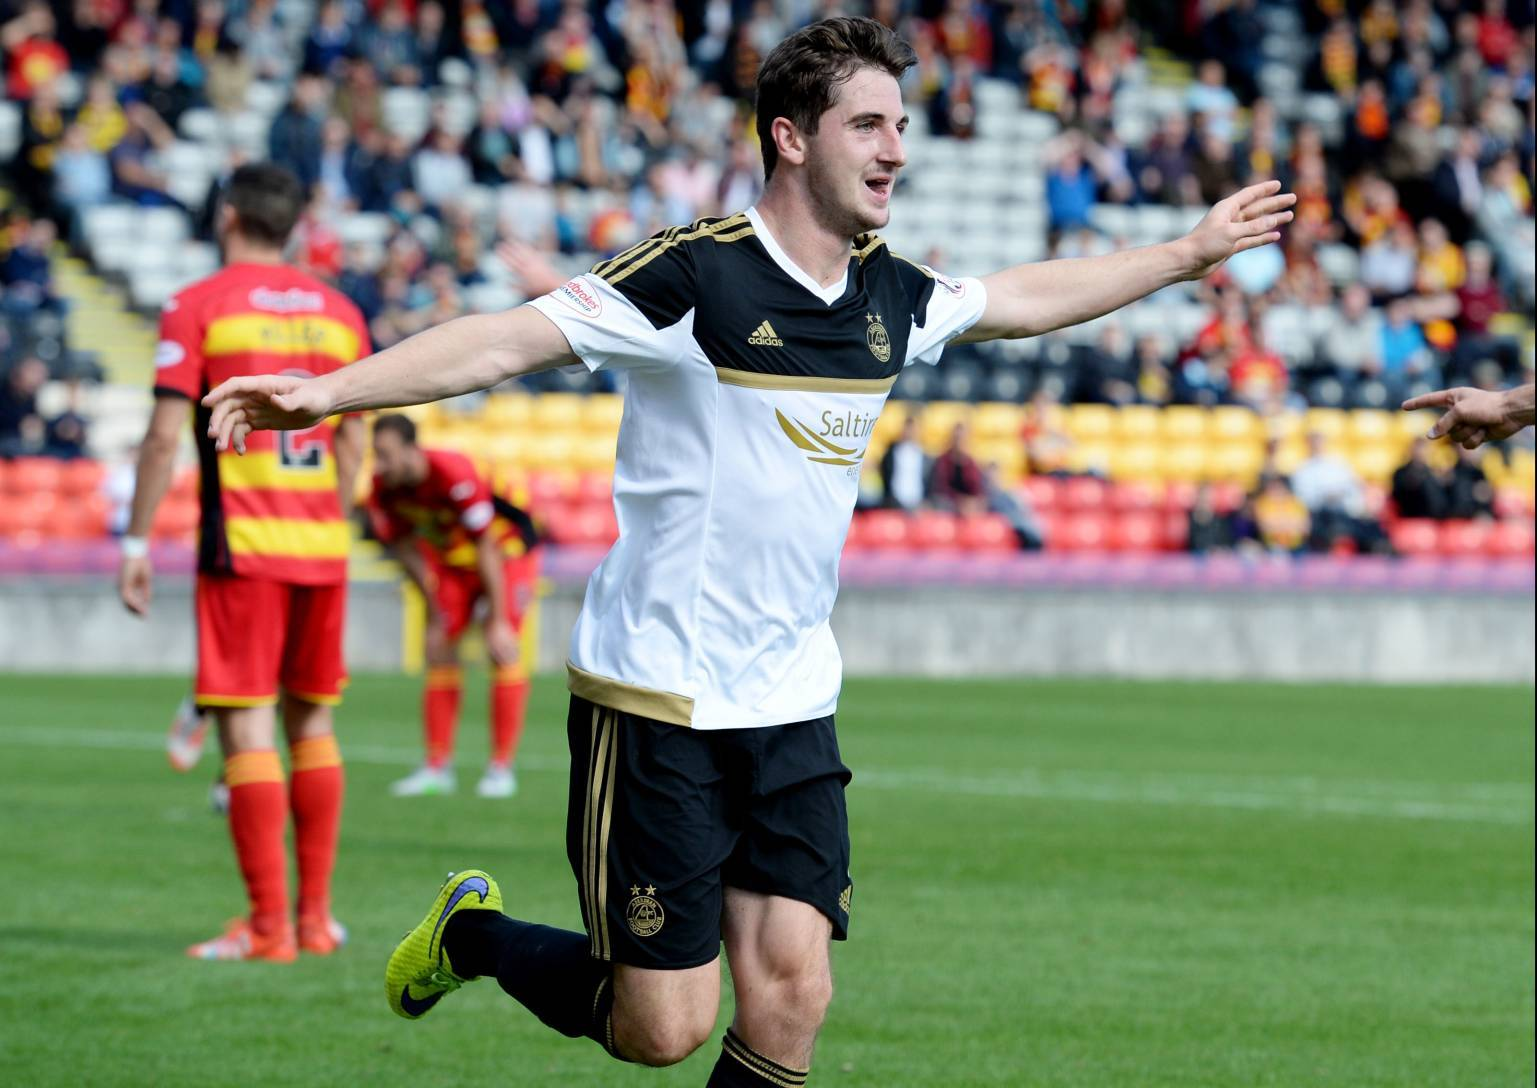 Kenny McLean celebrates after scoring Aberdeen's second goal against Partick Thistle.